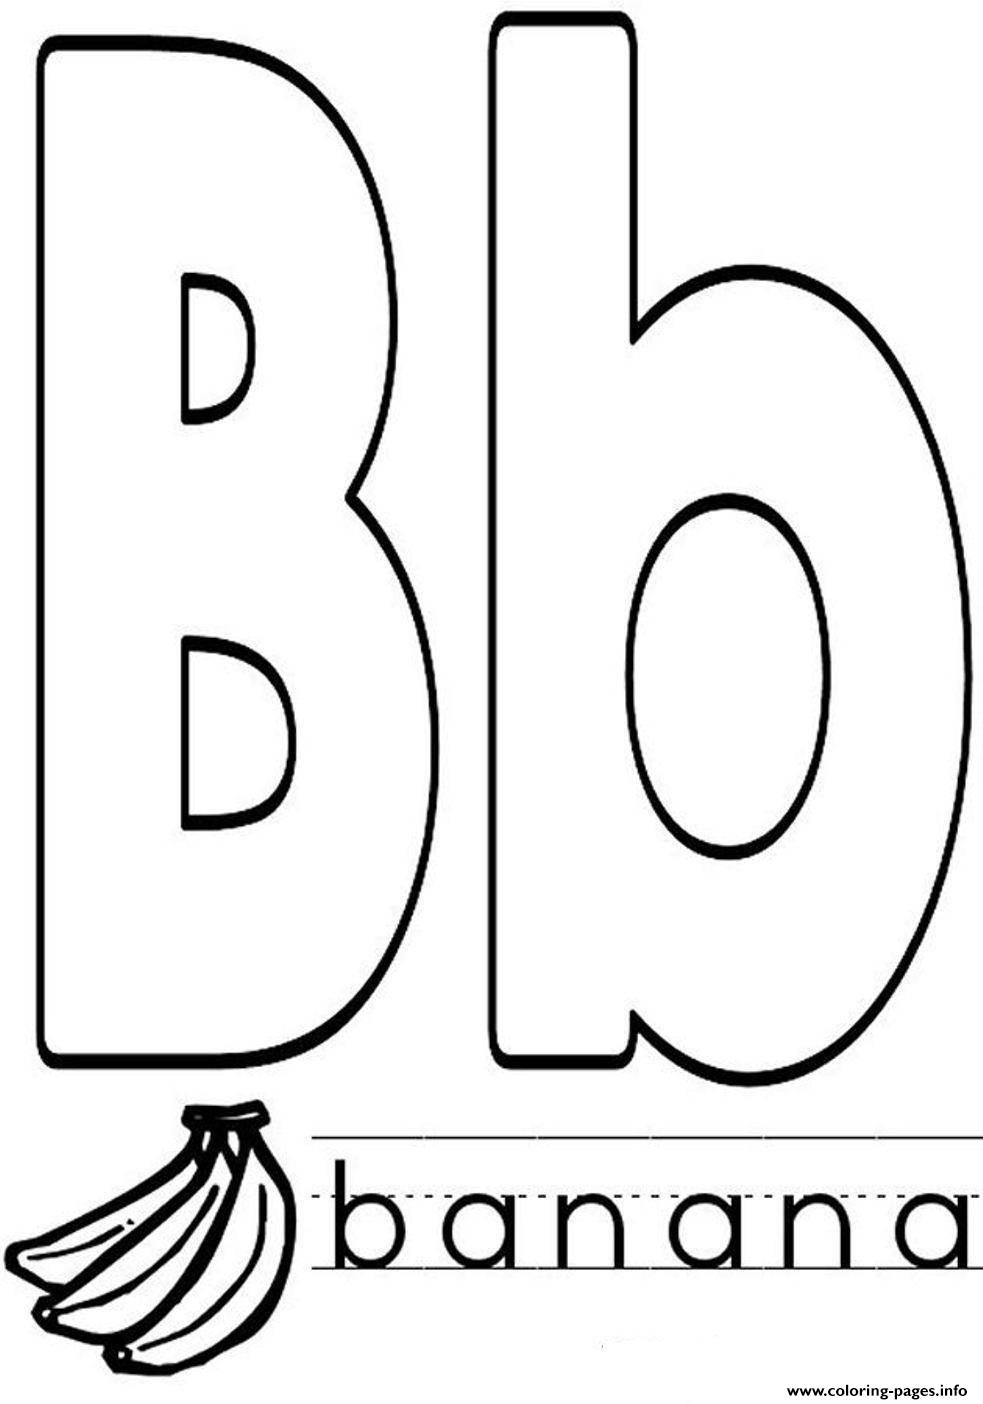 b words coloring pages - photo#26